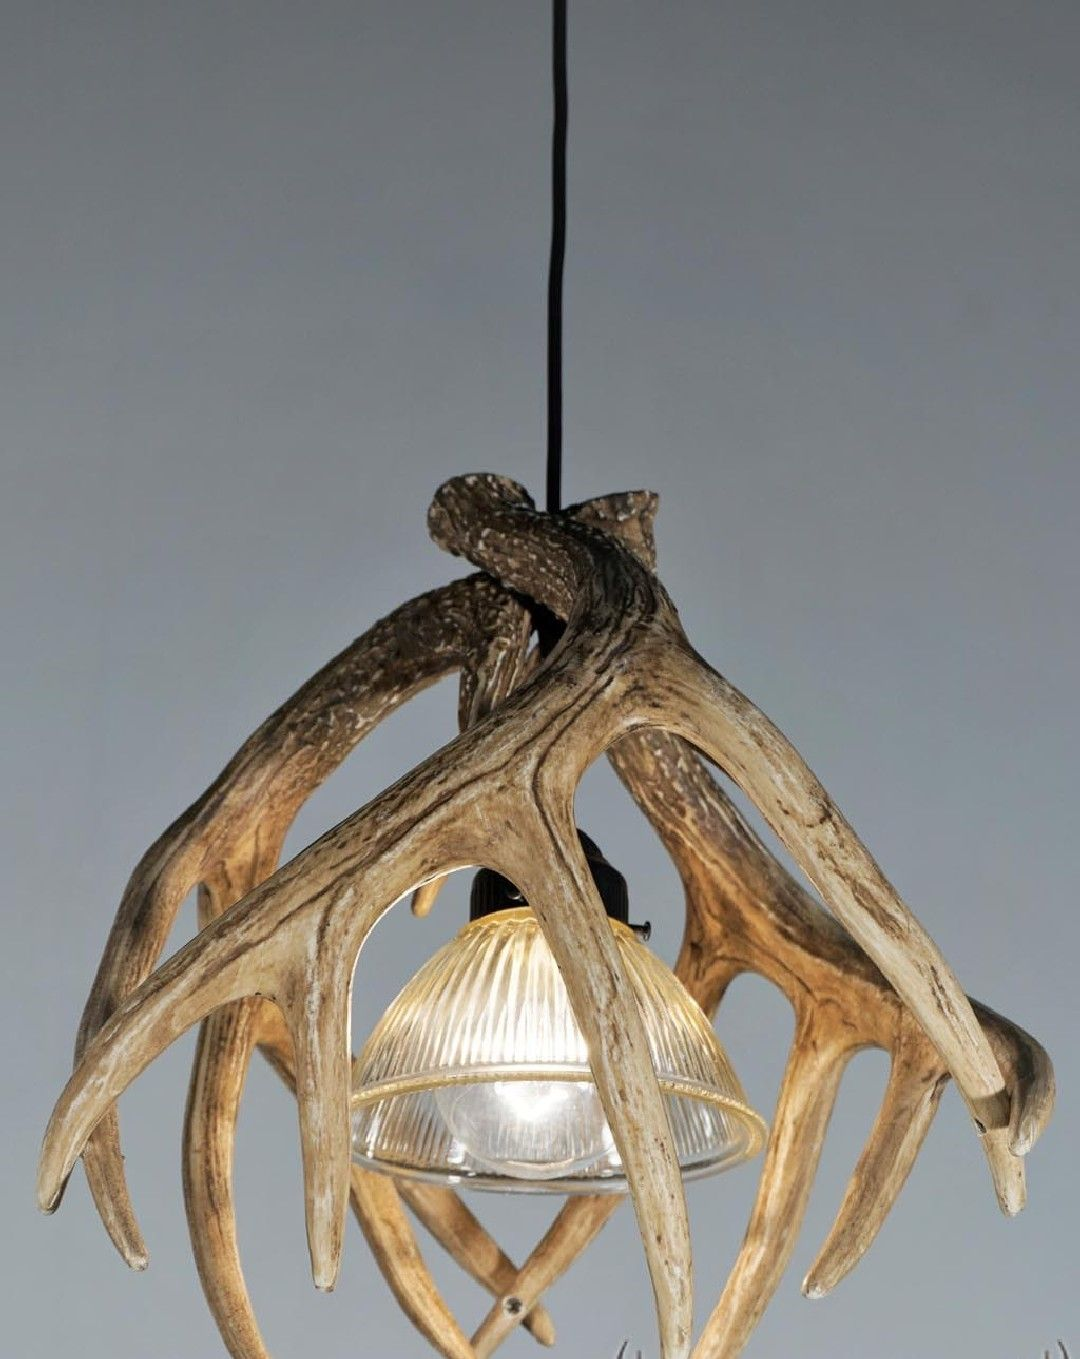 Awesome Rustic Deer Antler Decor Ideas Picture 24 Read More